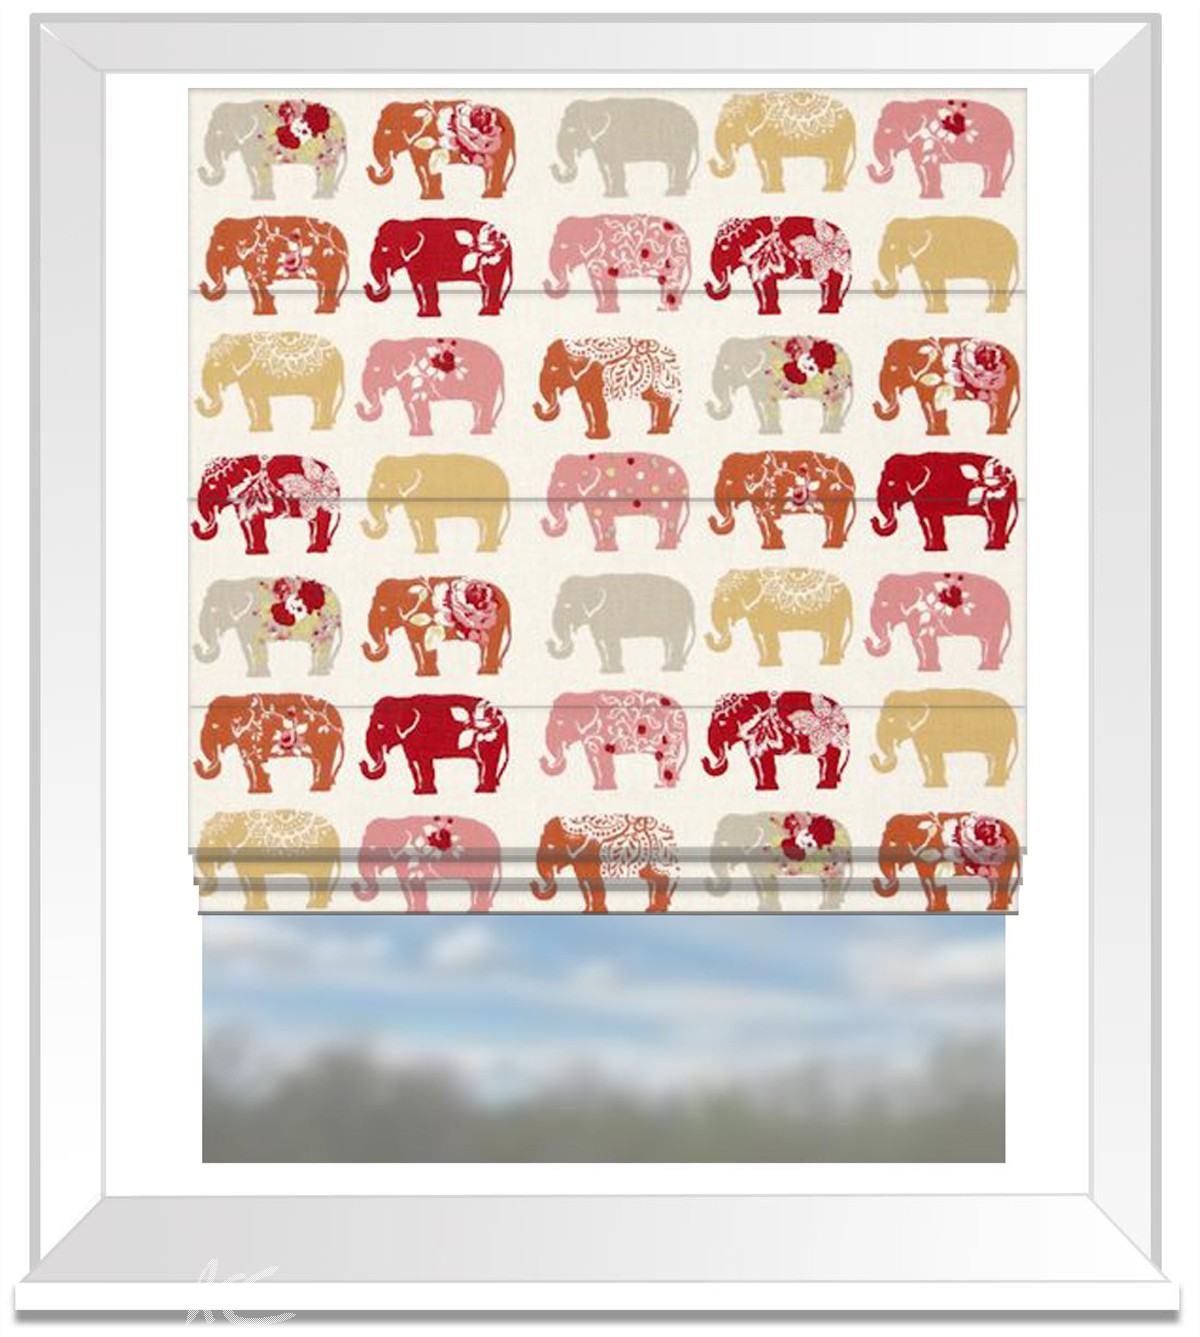 Clarke and Clarke Blighty Elephants Spice Roman Blind